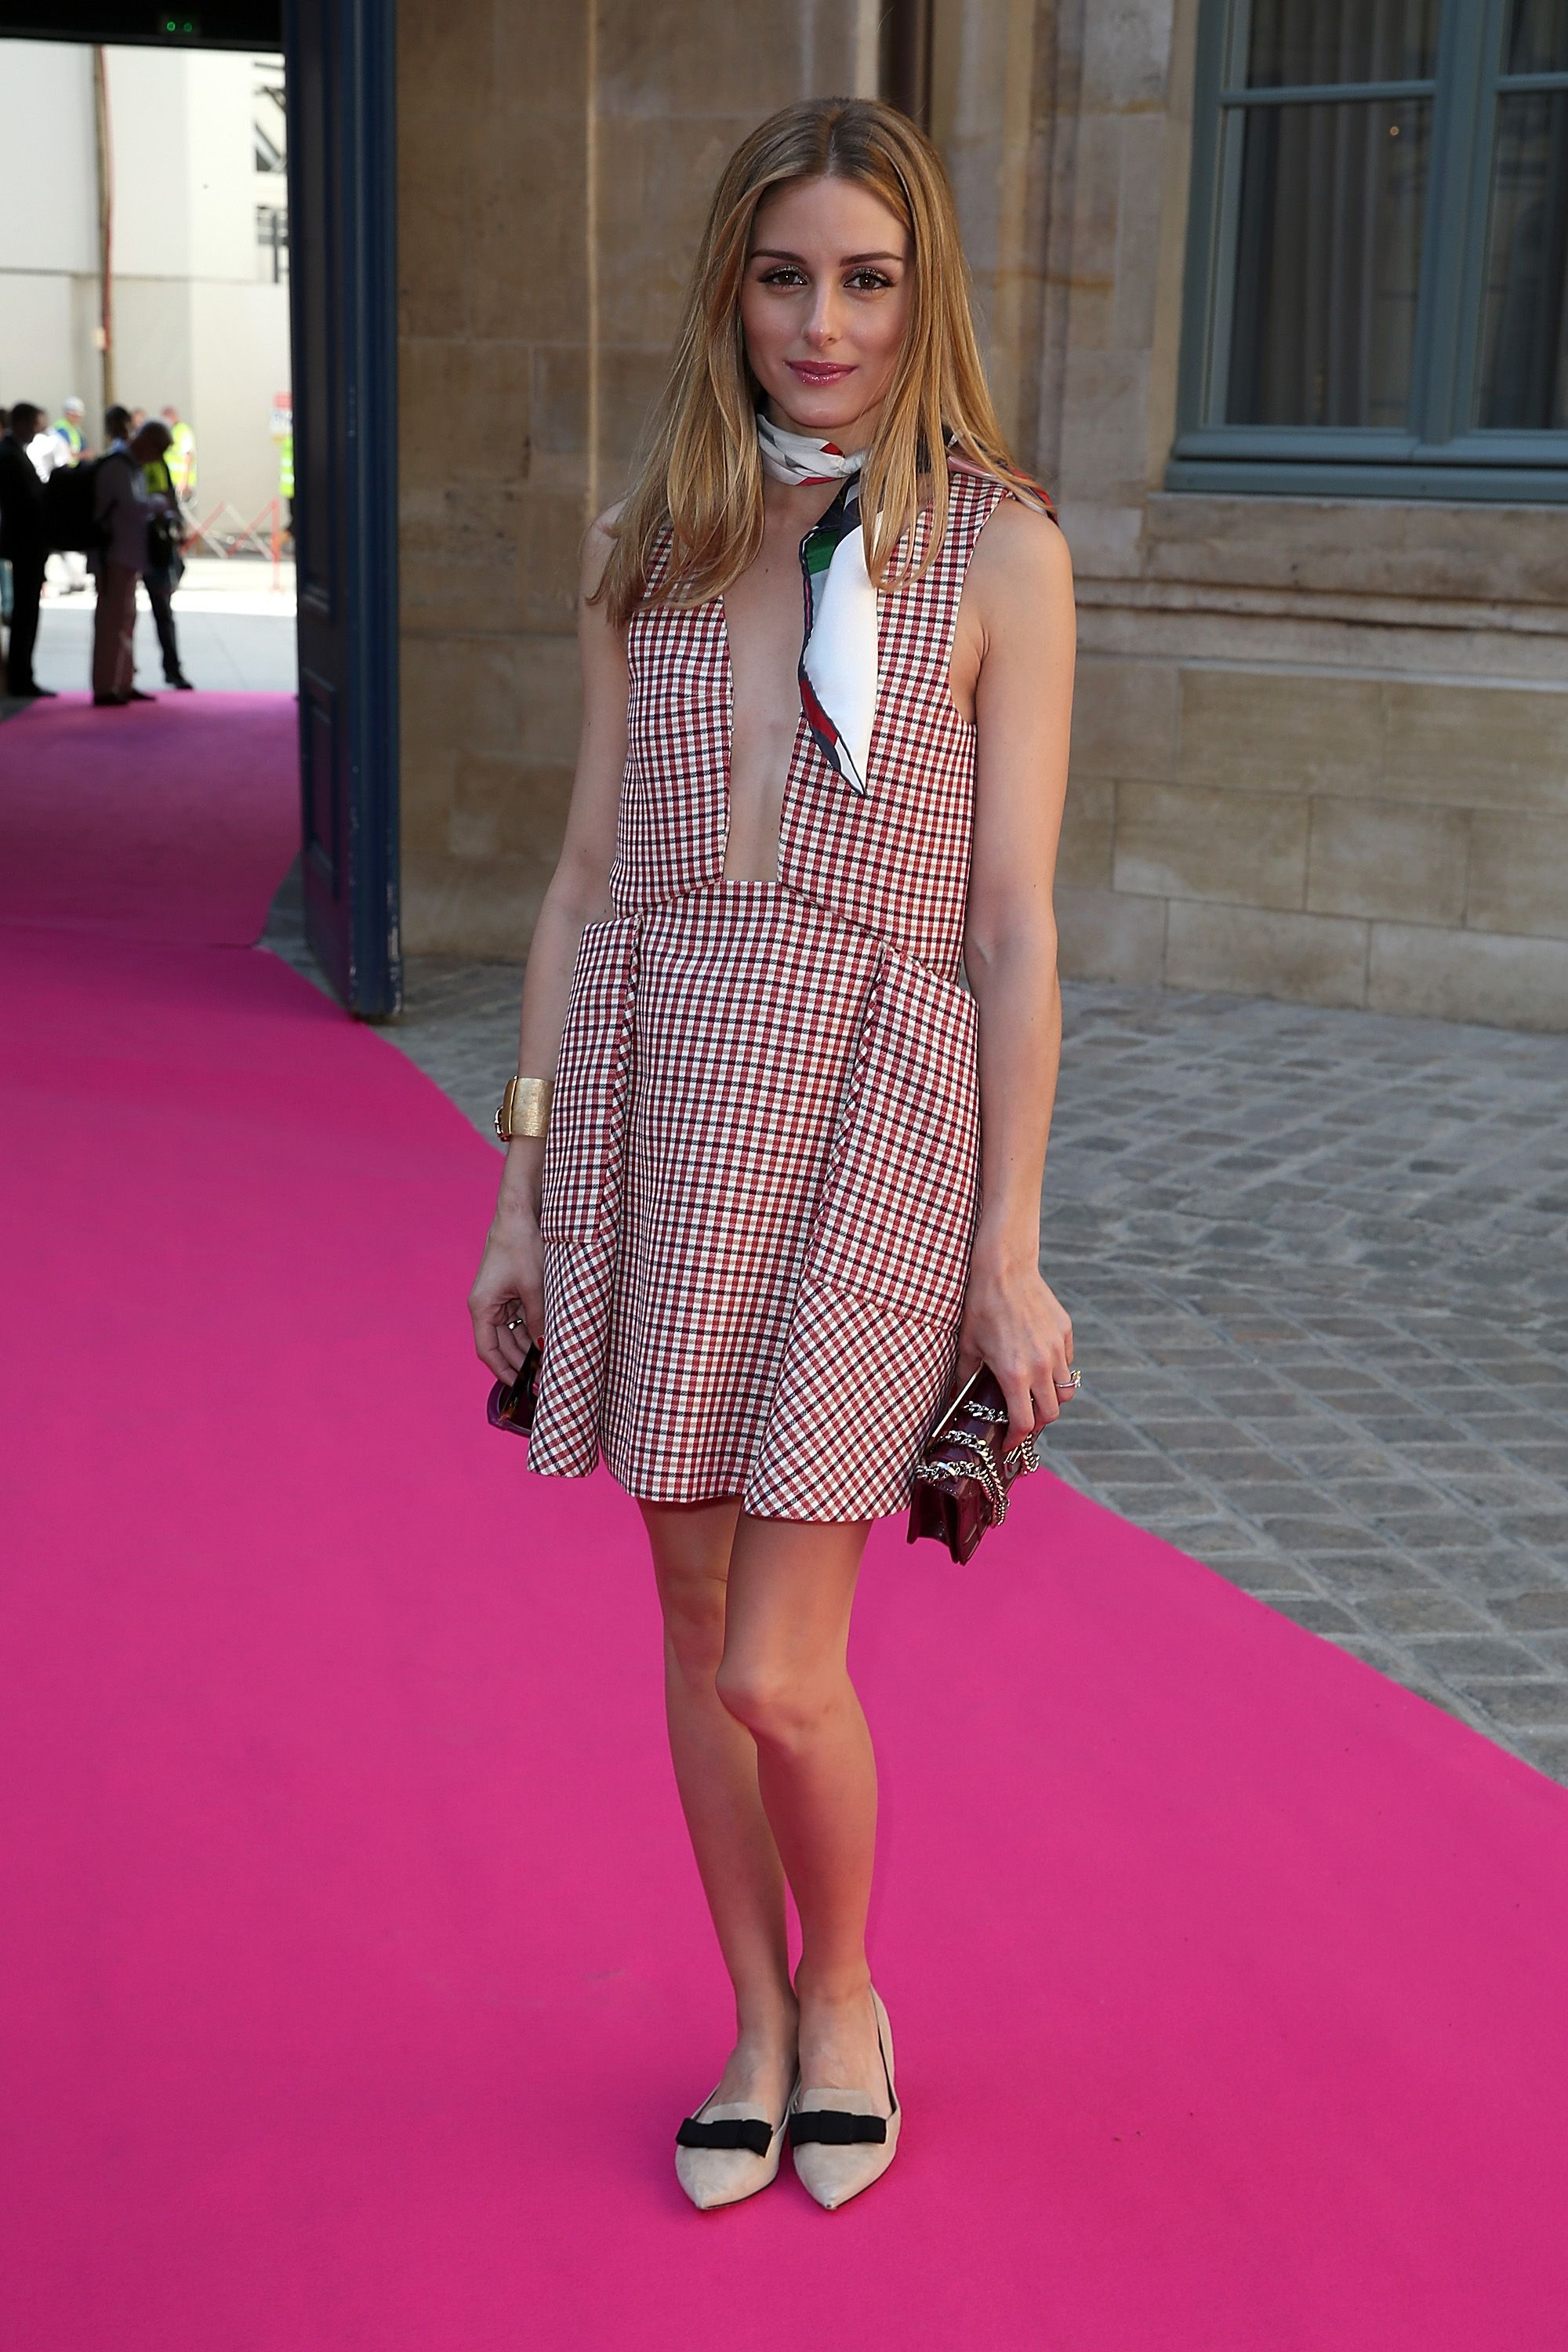 Who: Olivia Palermo  When: July 6, 2016  Why: Olivia Palermo attended Schiaparelli's couture show in this plaid number looking like a sweet French girl. Despite it's plunging neckline, Palermo kept this dress from looking too racy with her flawless accessory choices: a classic neck scarf, pointed flats and, of course, her massive engagement ring.